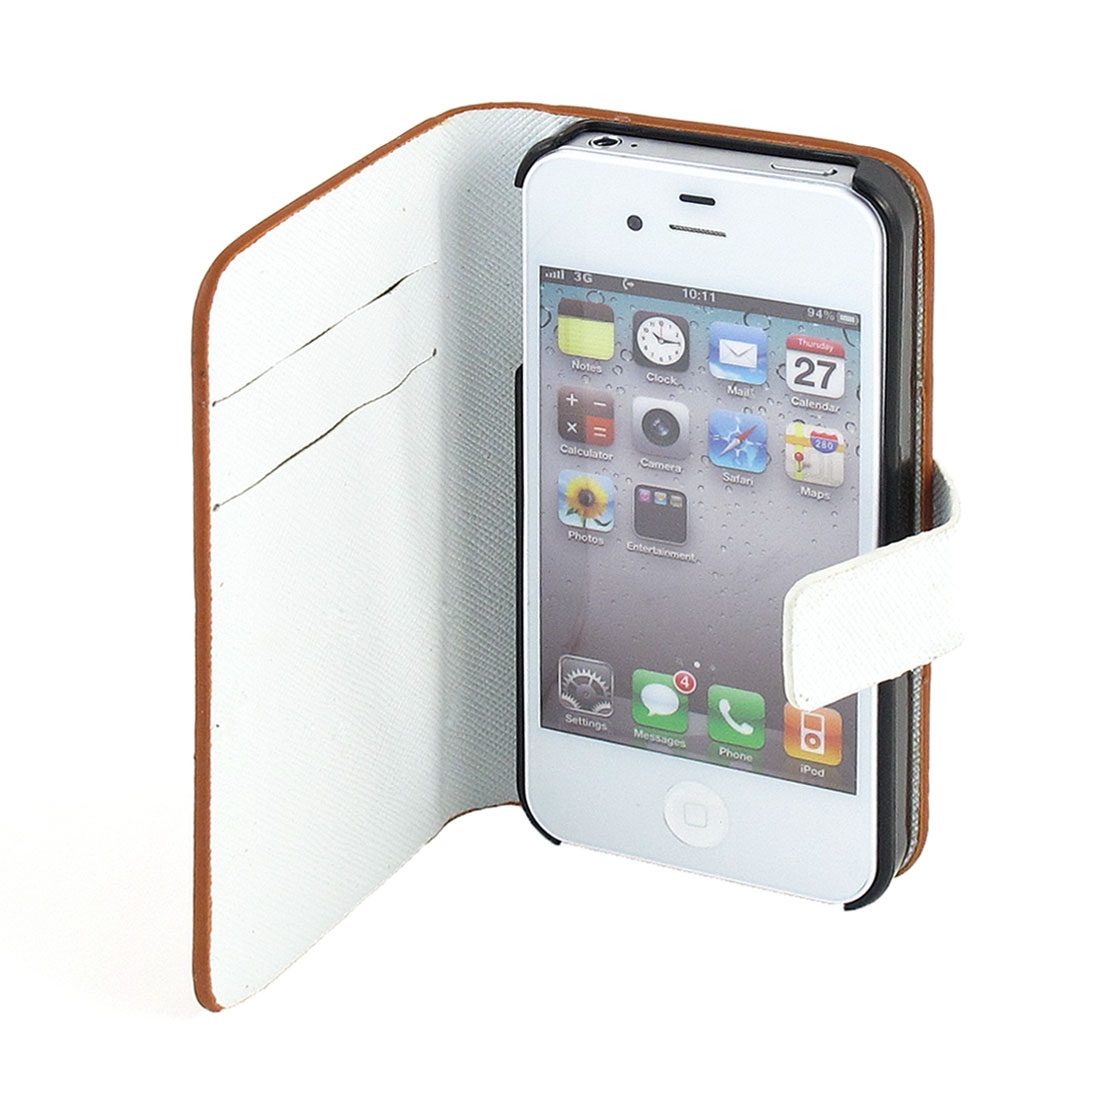 Brown Faux Leather Textured Pattern Pouch Holder for iPhone 4 4G